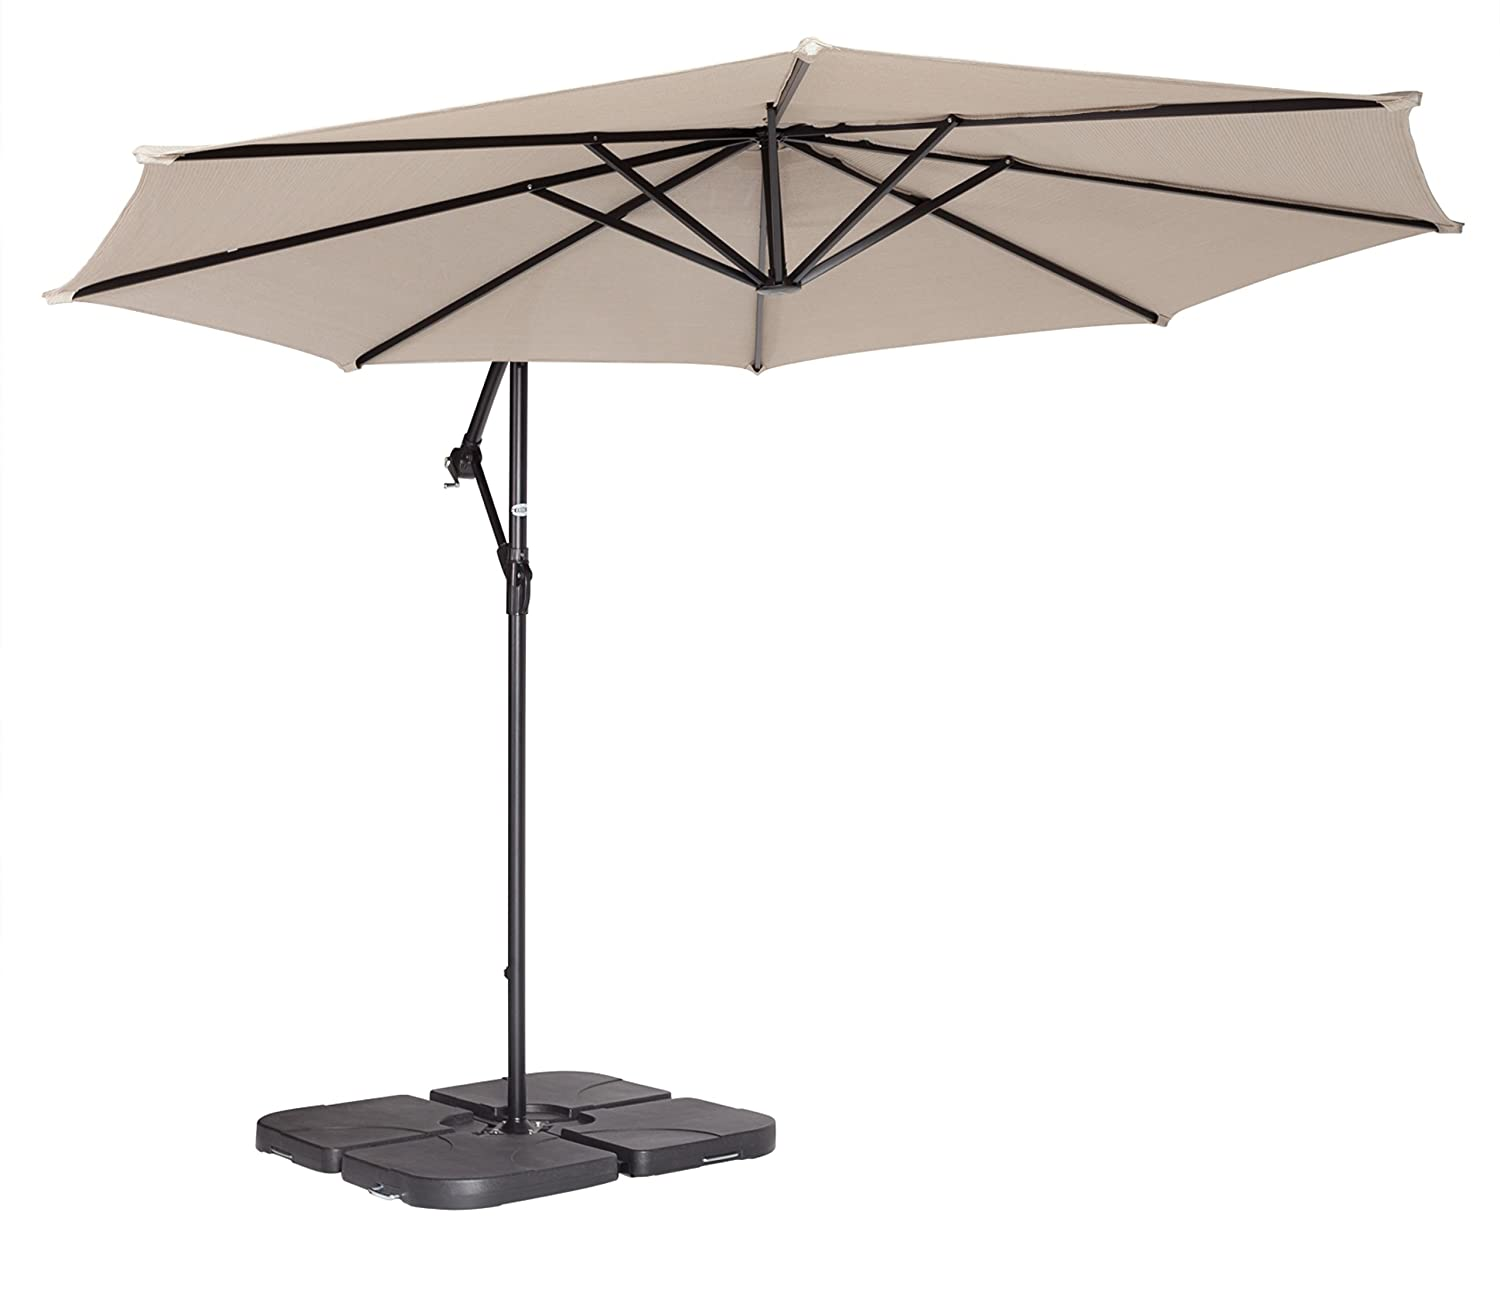 bronze resin base set in bases lb of weights p island patio stands umbrella